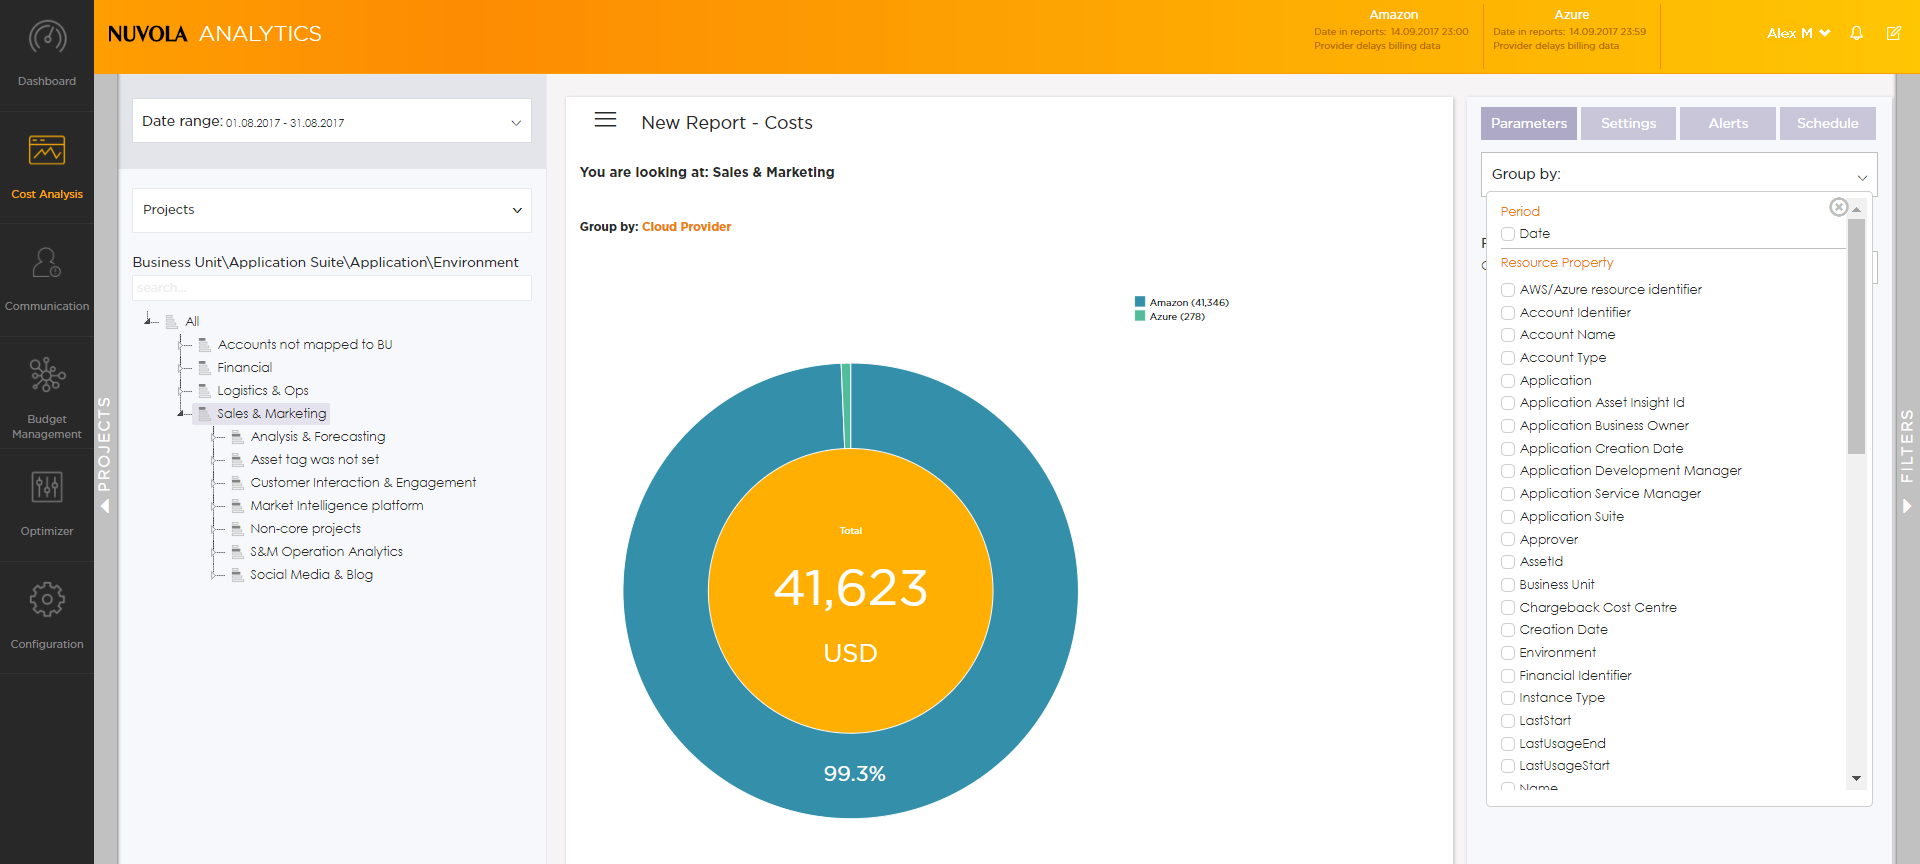 Public Cloud Cost Visualization in Nuvola Analytics